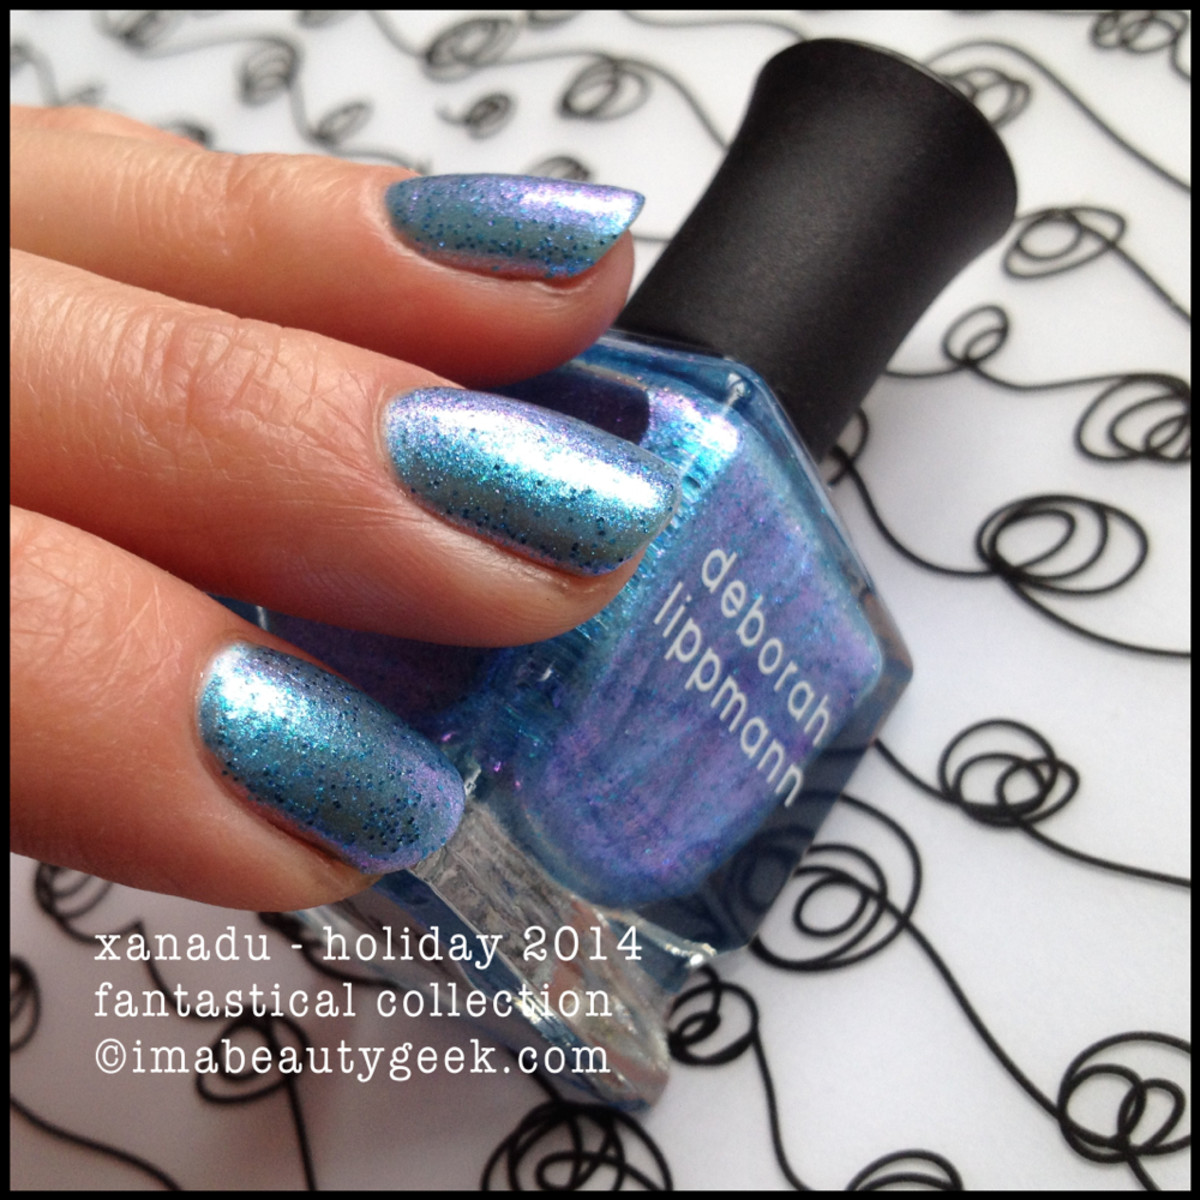 Deborah Lippmann Fantastical Xanadu Holiday 2014